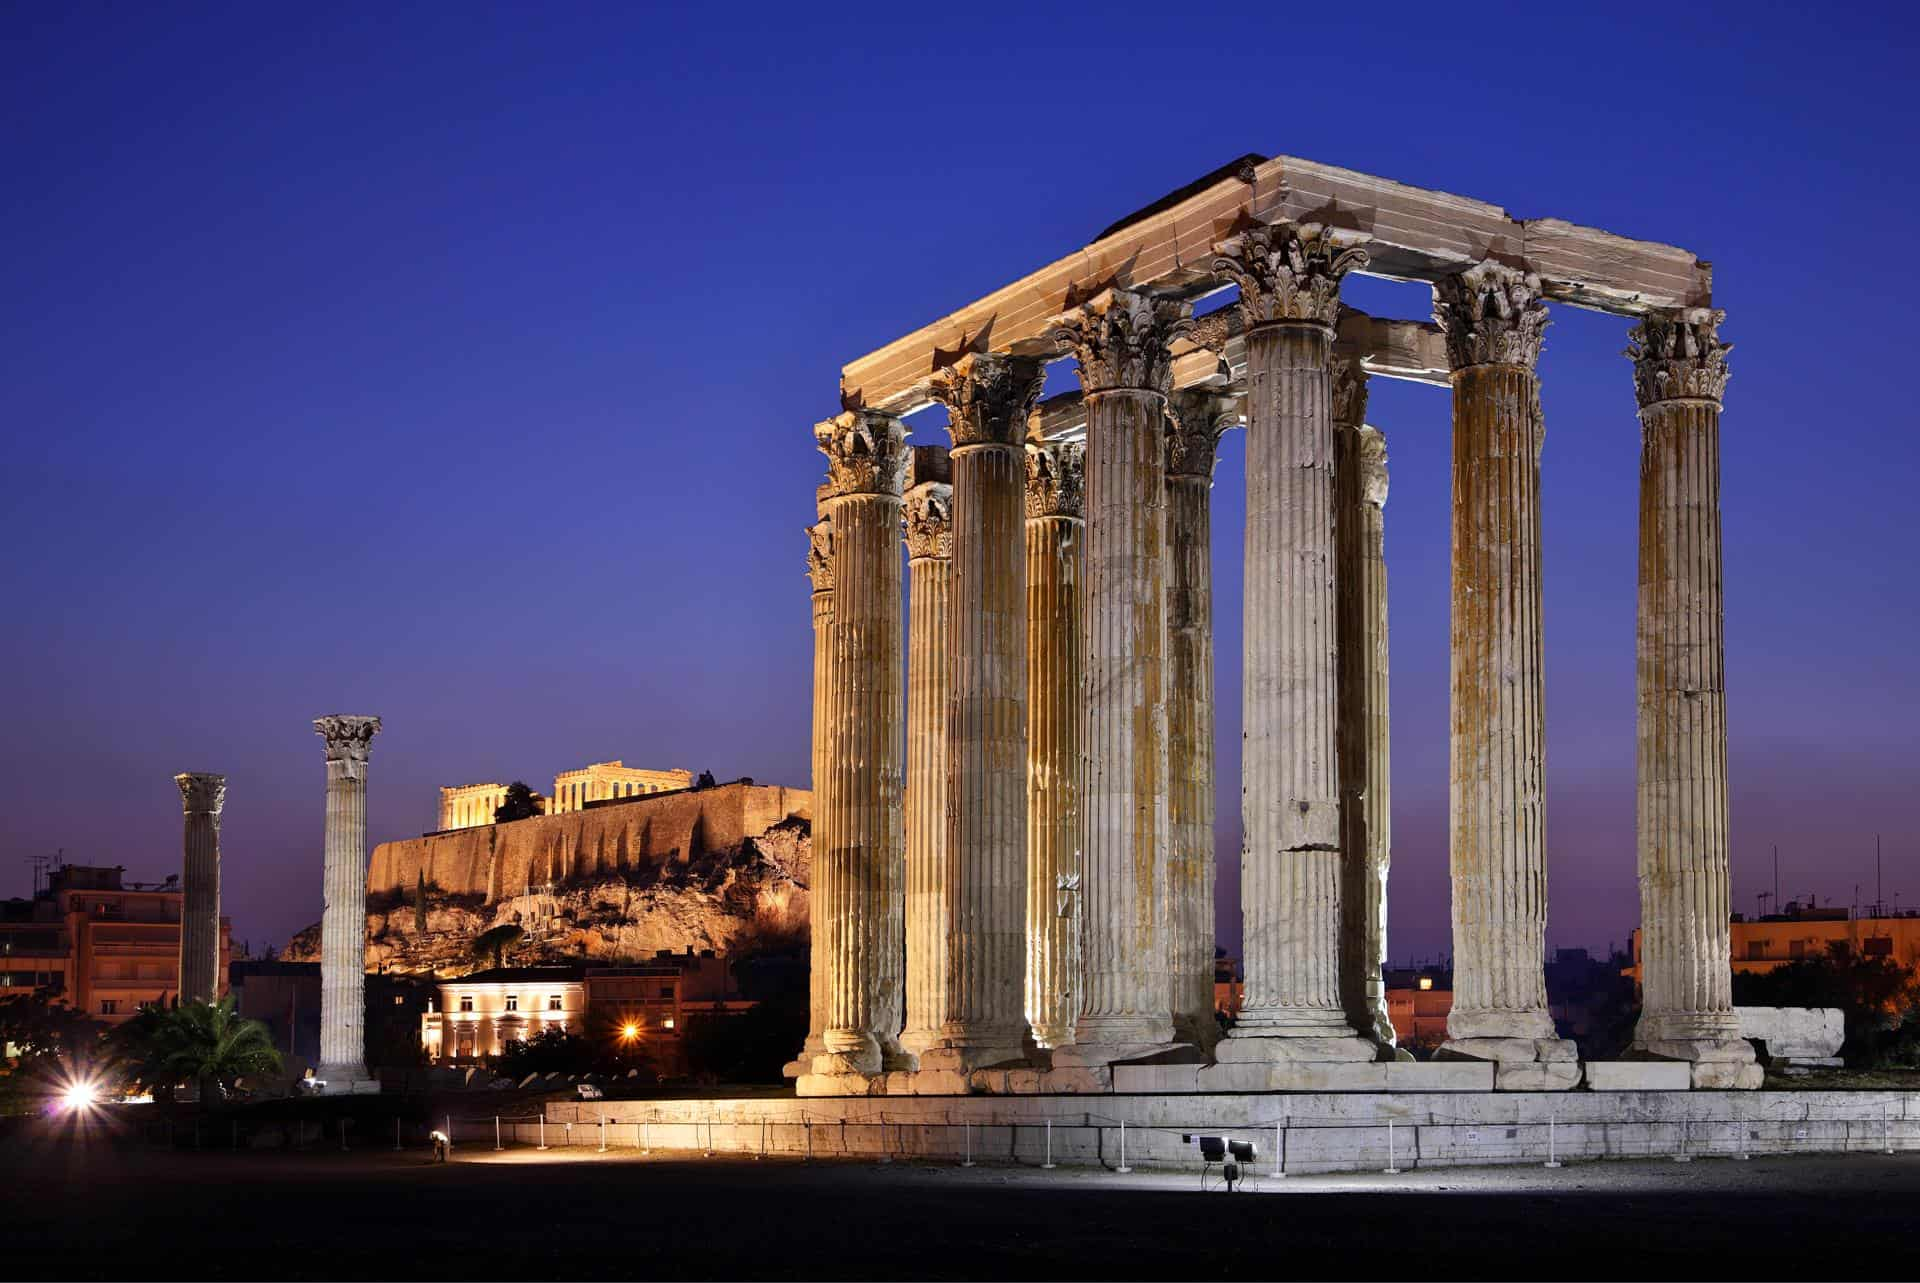 Temple of Olympian Zeus at night